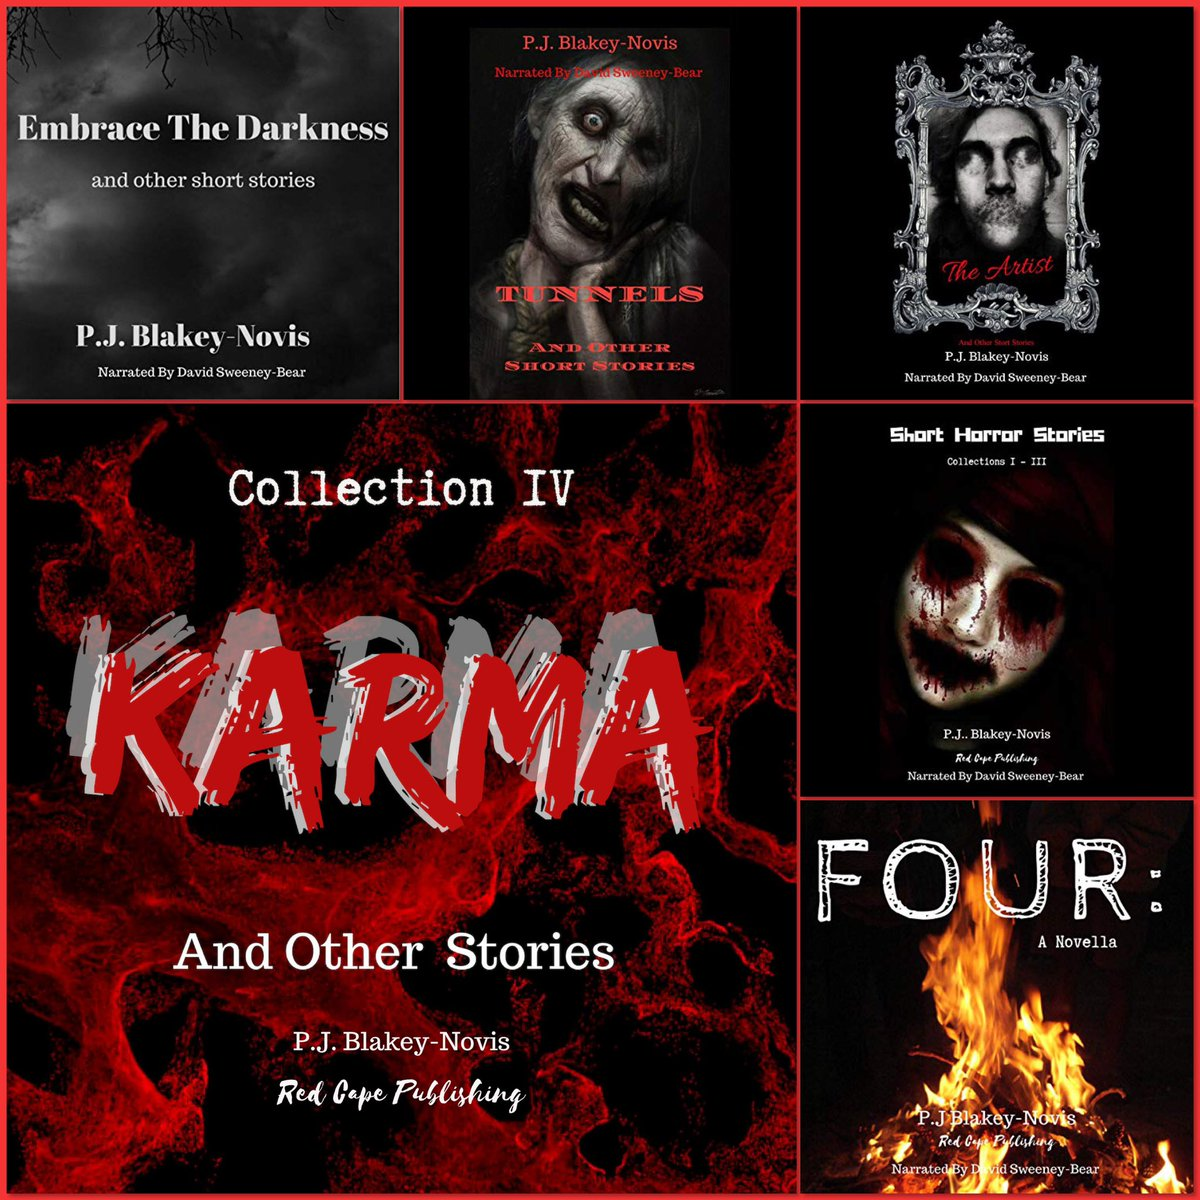 'Karma & Other Stories' is the latest release from @RedCapePublish now available on #Audible   You can find Karma & other Audible books from @pjbn_author here  UK  https://www. audible.co.uk/pd/The-Artist- Other-Stories-Collection-III-Audiobook/B07T9GKJL7  …   US  https://www. audible.com/pd/The-Artist- Other-Stories-Collection-III-Audiobook/B07TDN9GXG  …   #SpreadtheHorror #ShareTheHorror #promotehorror #NonProfitHorror<br>http://pic.twitter.com/kAbERds9rK